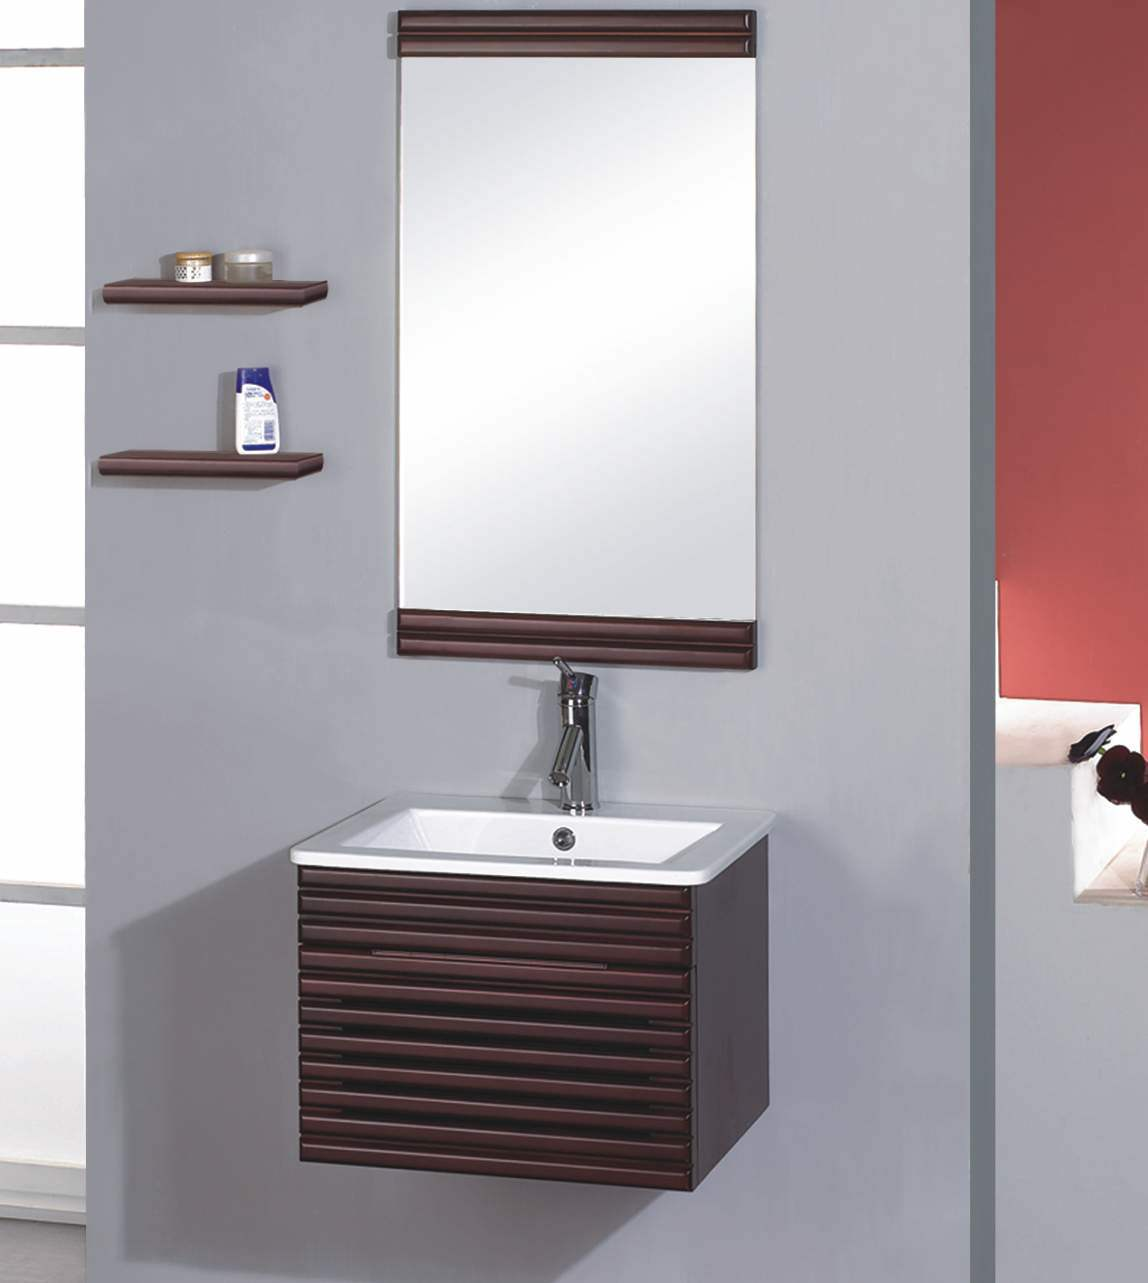 Http Www Made In China Com Showroom Ddbamboo Product Detailebsemdqclfrw China Bamboo Bathroom Cabinet Go 006 Html